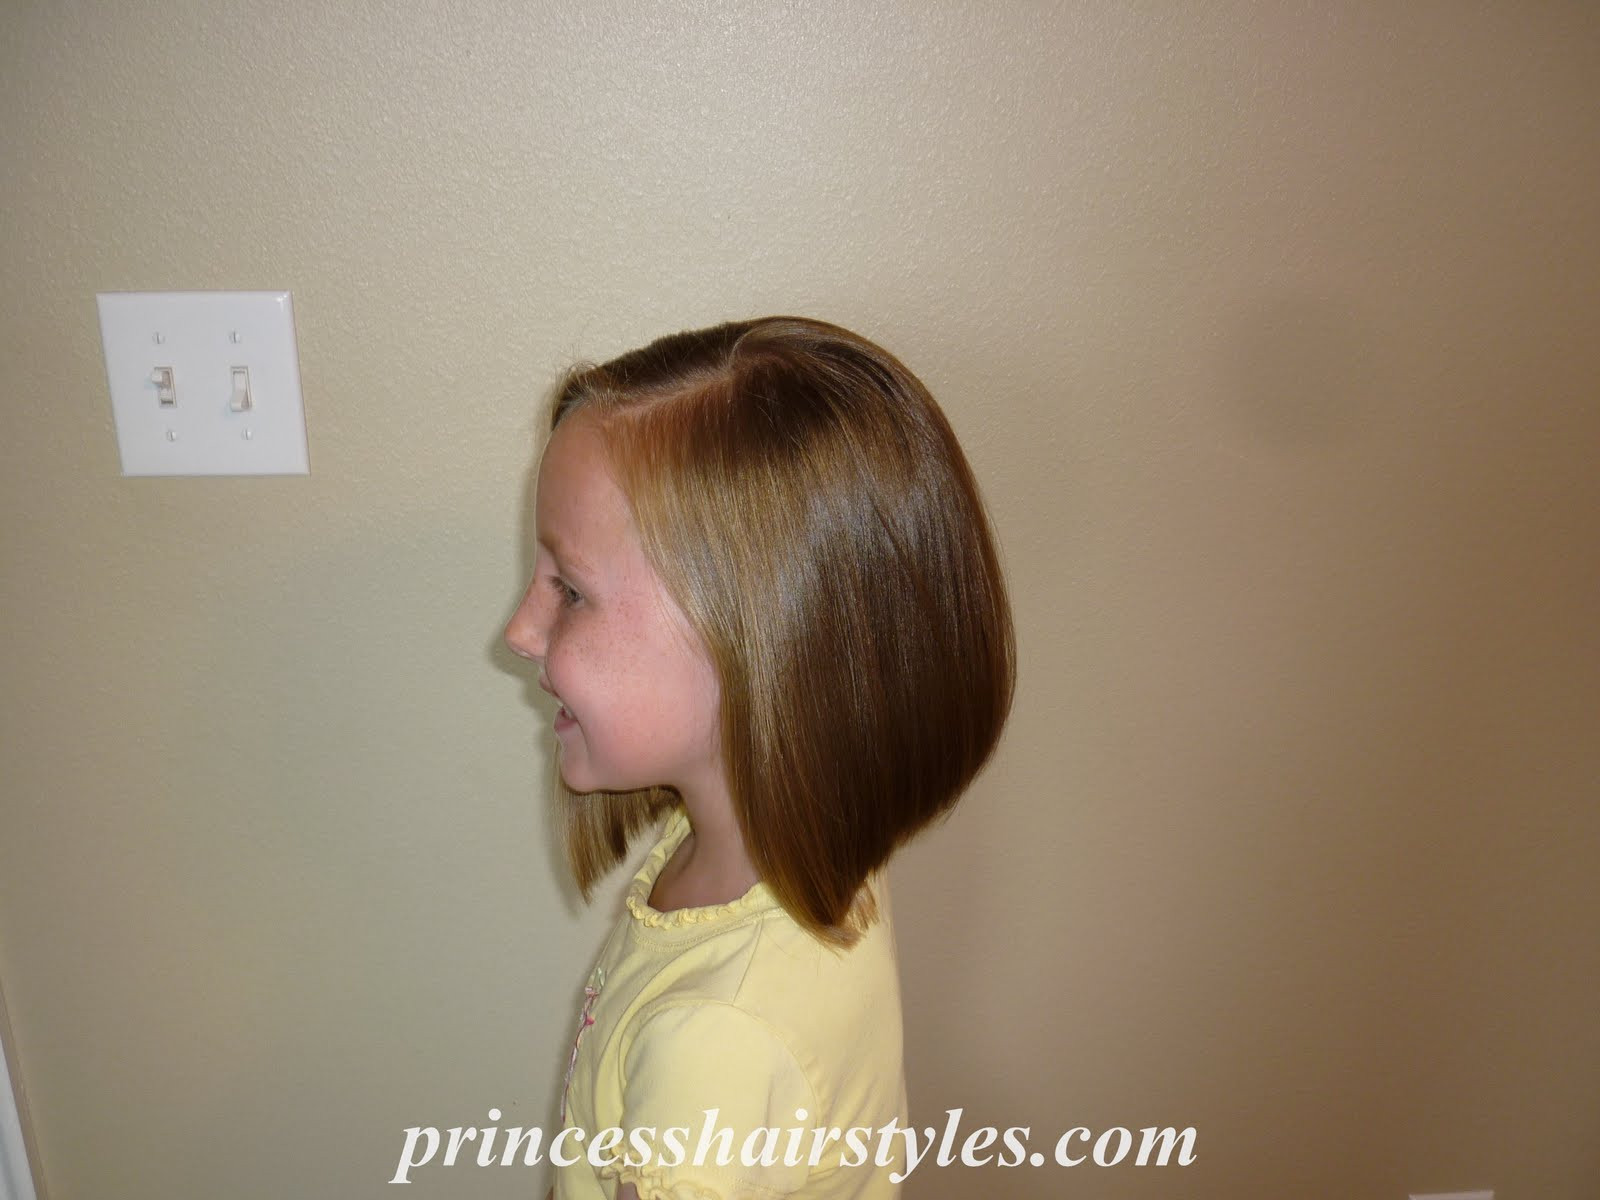 Best ideas about Locks Of Love Free Hair Cut . Save or Pin Hairstyles For Girls Locks Love Hair Cut Before and Now.